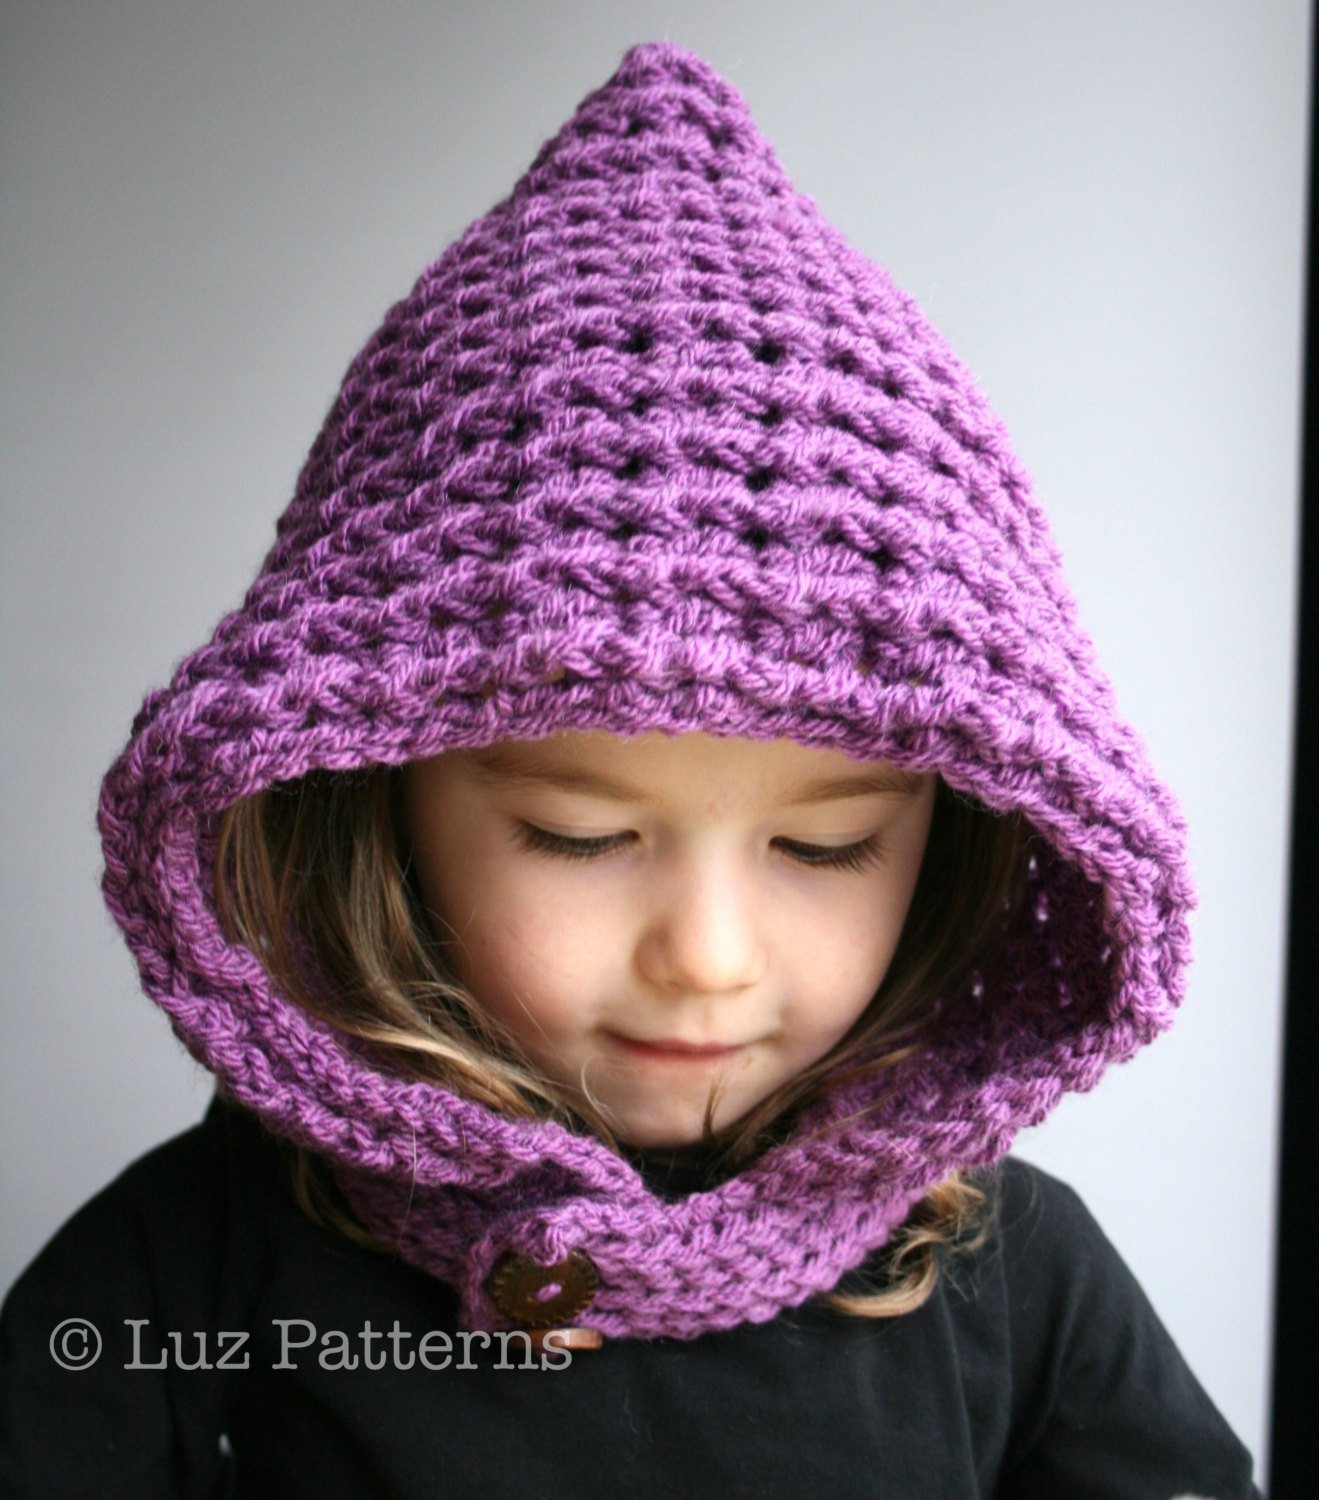 Crochet Hoodie Luxury Crochet Patterns Crochet Hat Pattern Hoo Crochet Pattern Of Awesome 43 Images Crochet Hoodie